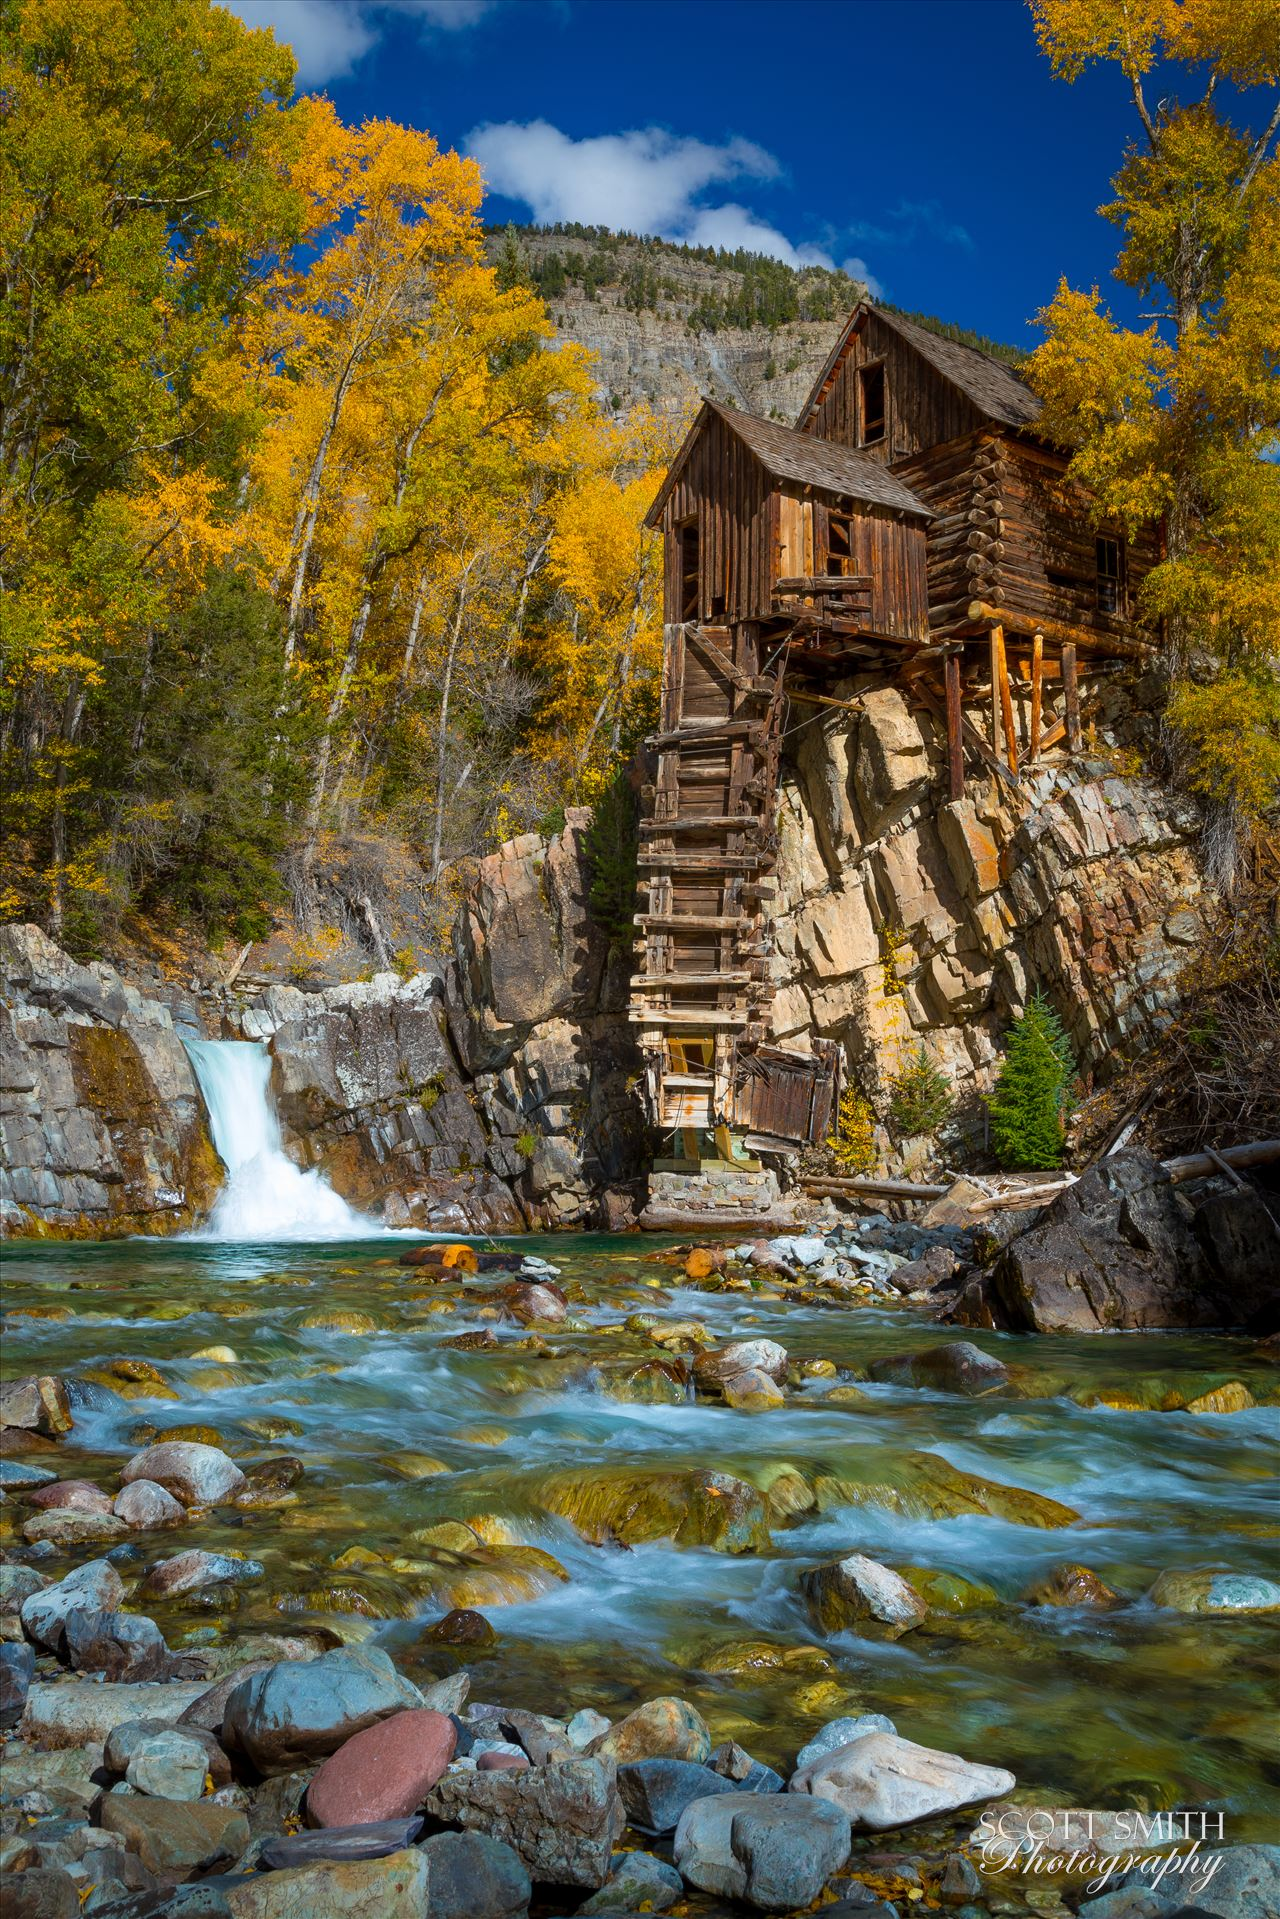 Crystal Mill, Colorado 08 - The Crystal Mill, or the Old Mill is an 1892 wooden powerhouse located on an outcrop above the Crystal River in Crystal, Colorado by Scott Smith Photos